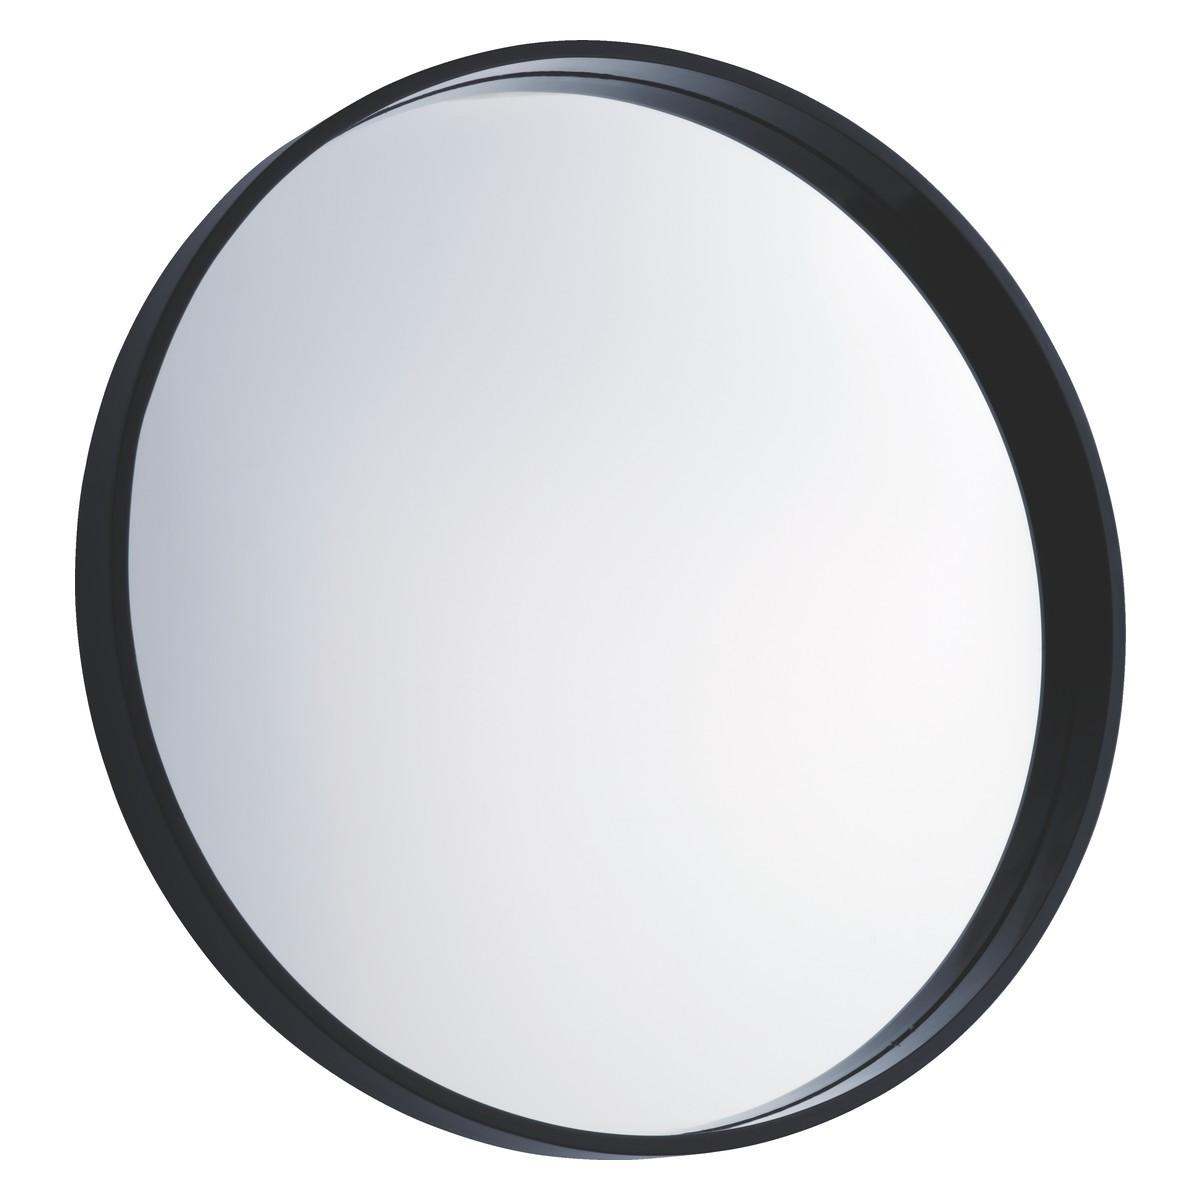 Aimee Black Round Wall Mirror D65Cm | Buy Now At Habitat Uk With Regard To Round Black Mirror (View 2 of 20)